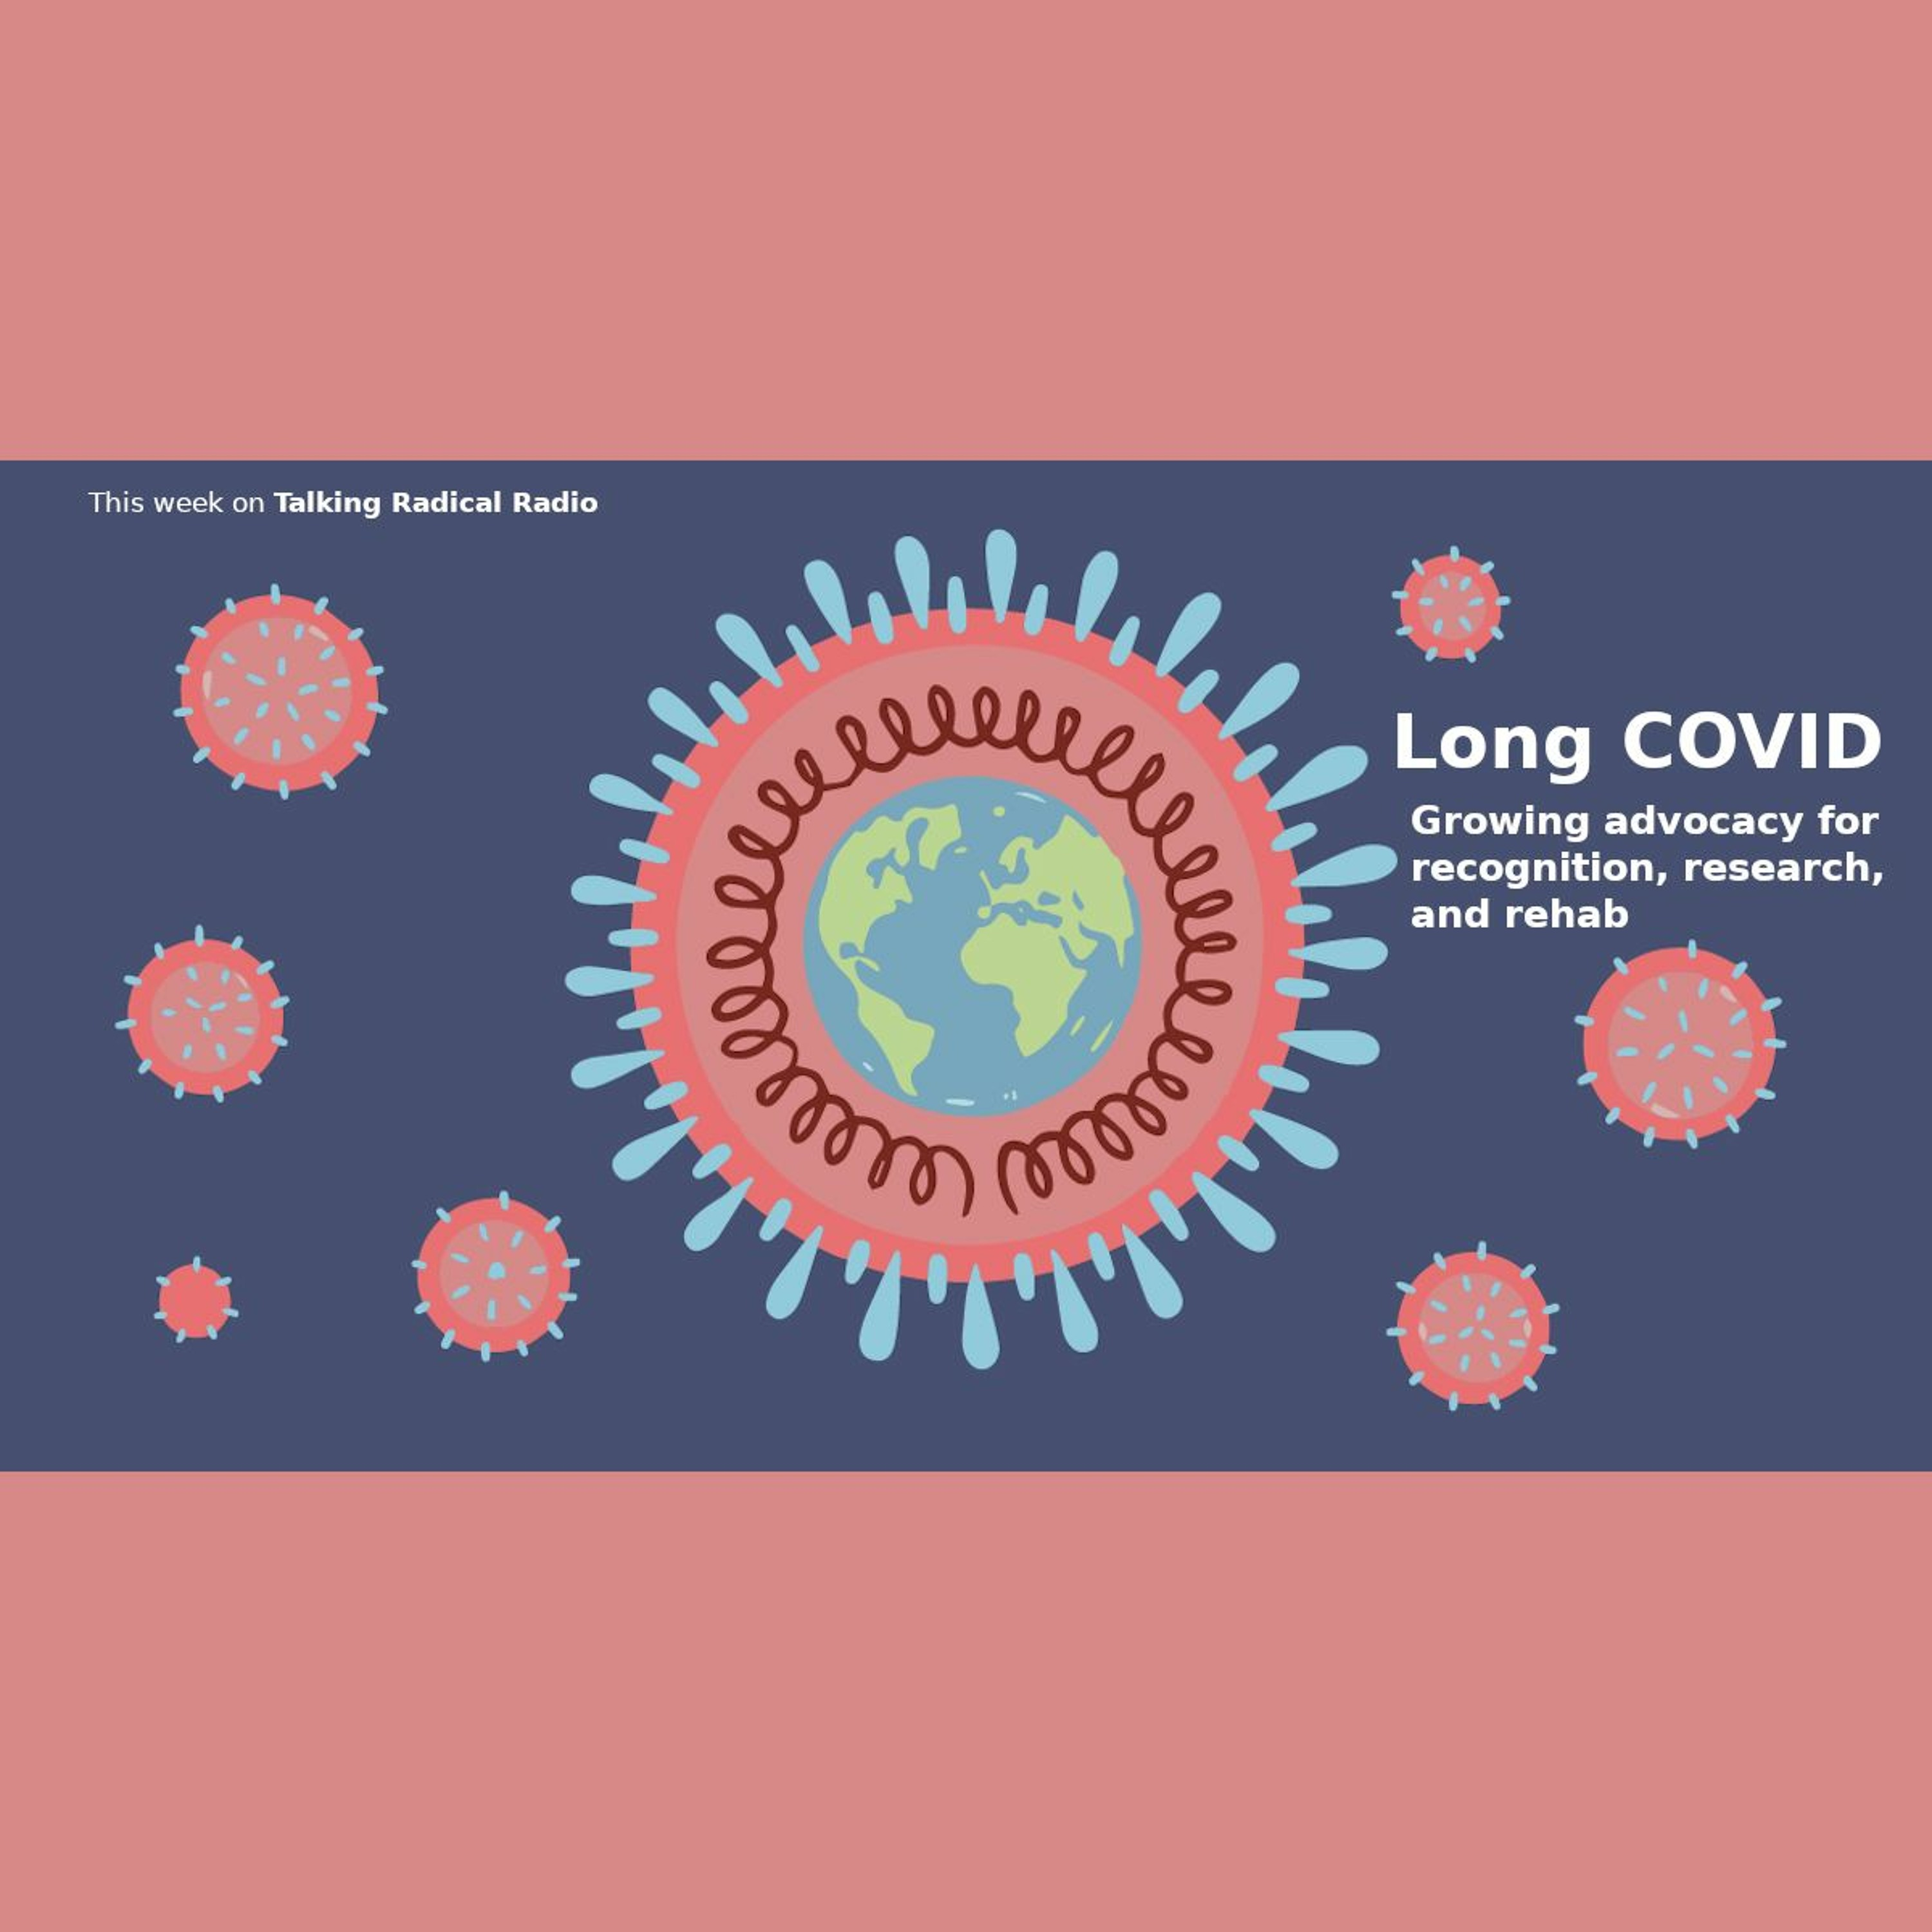 Long COVID: Growing advocacy for recognition, research, and rehab